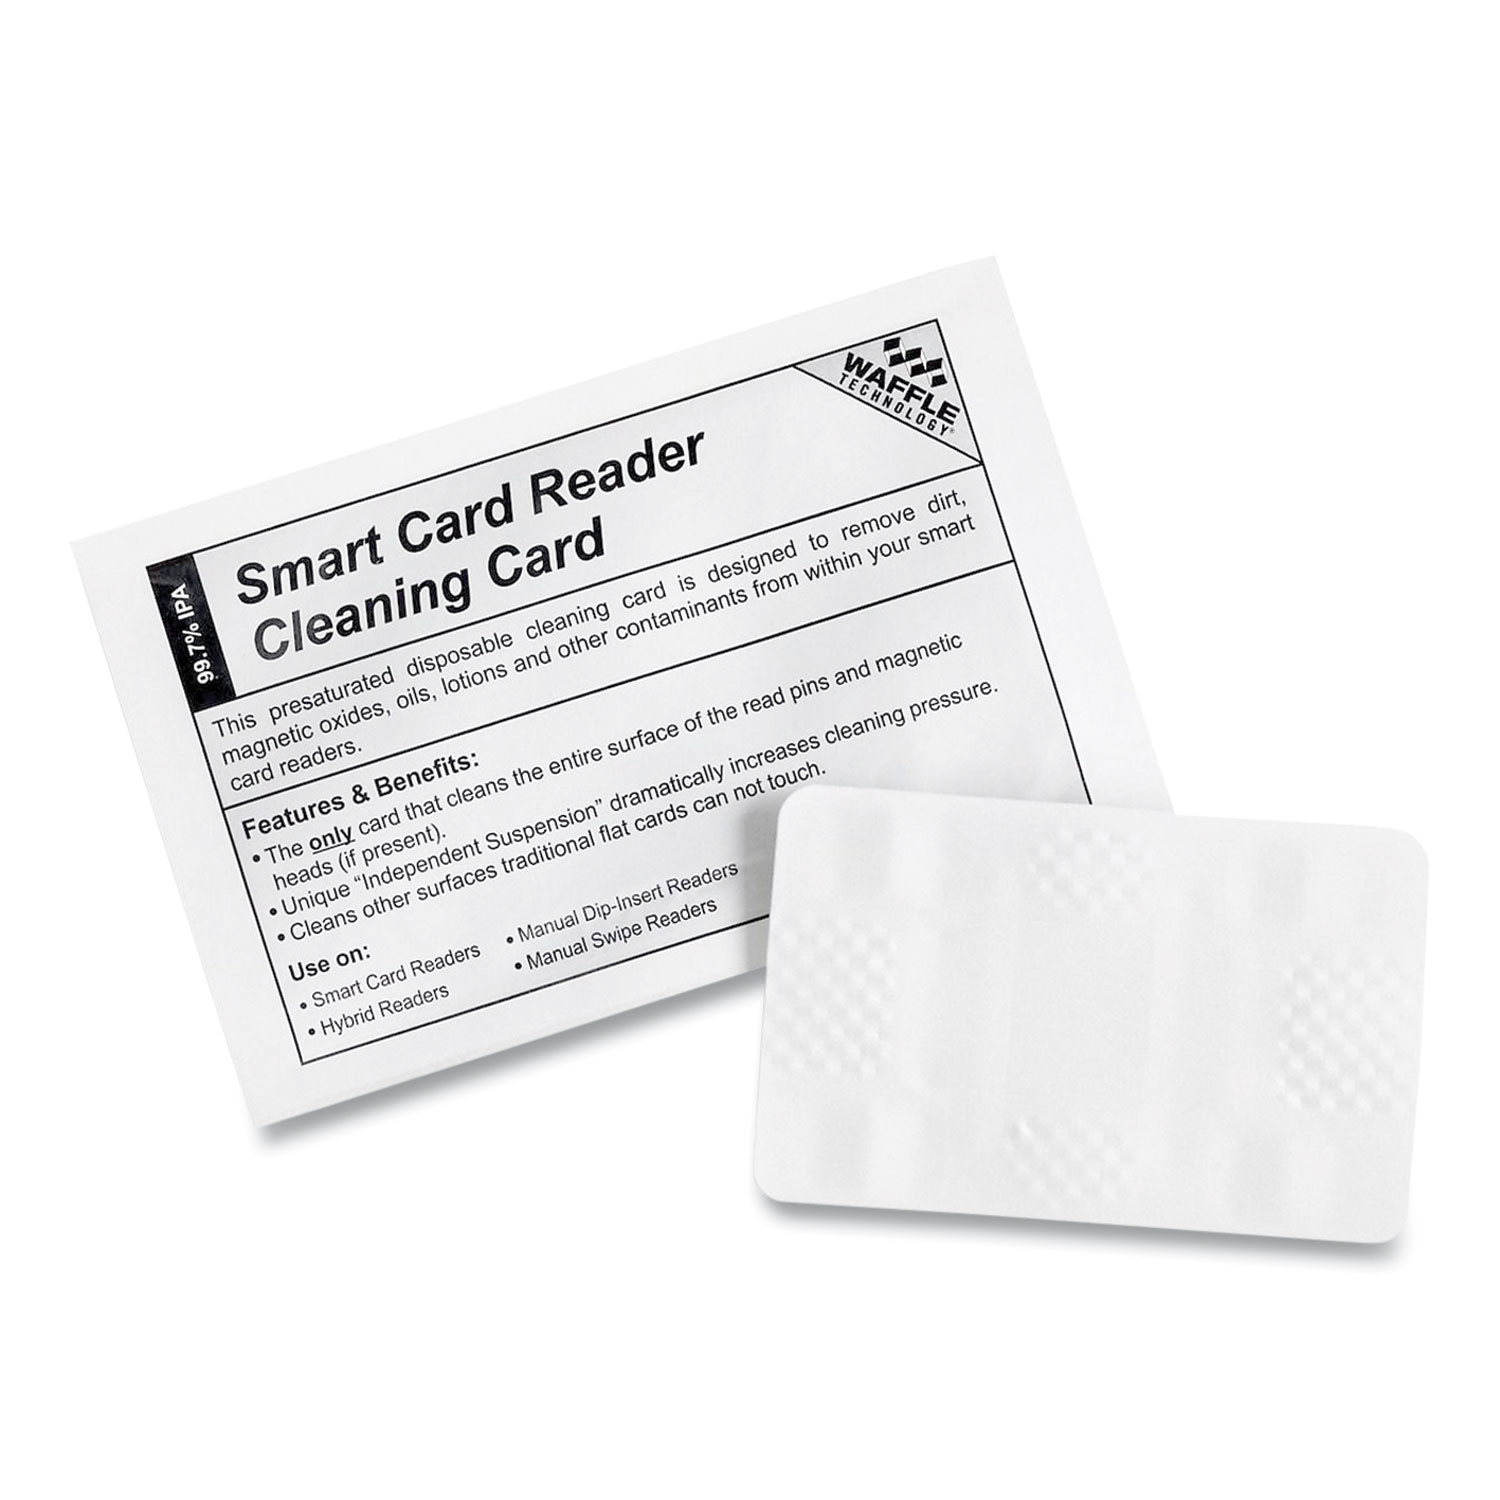 TST/Impreso, Inc. Magnetic Card Reader Cleaning Cards, 2.1 x 3.35, 40/Carton